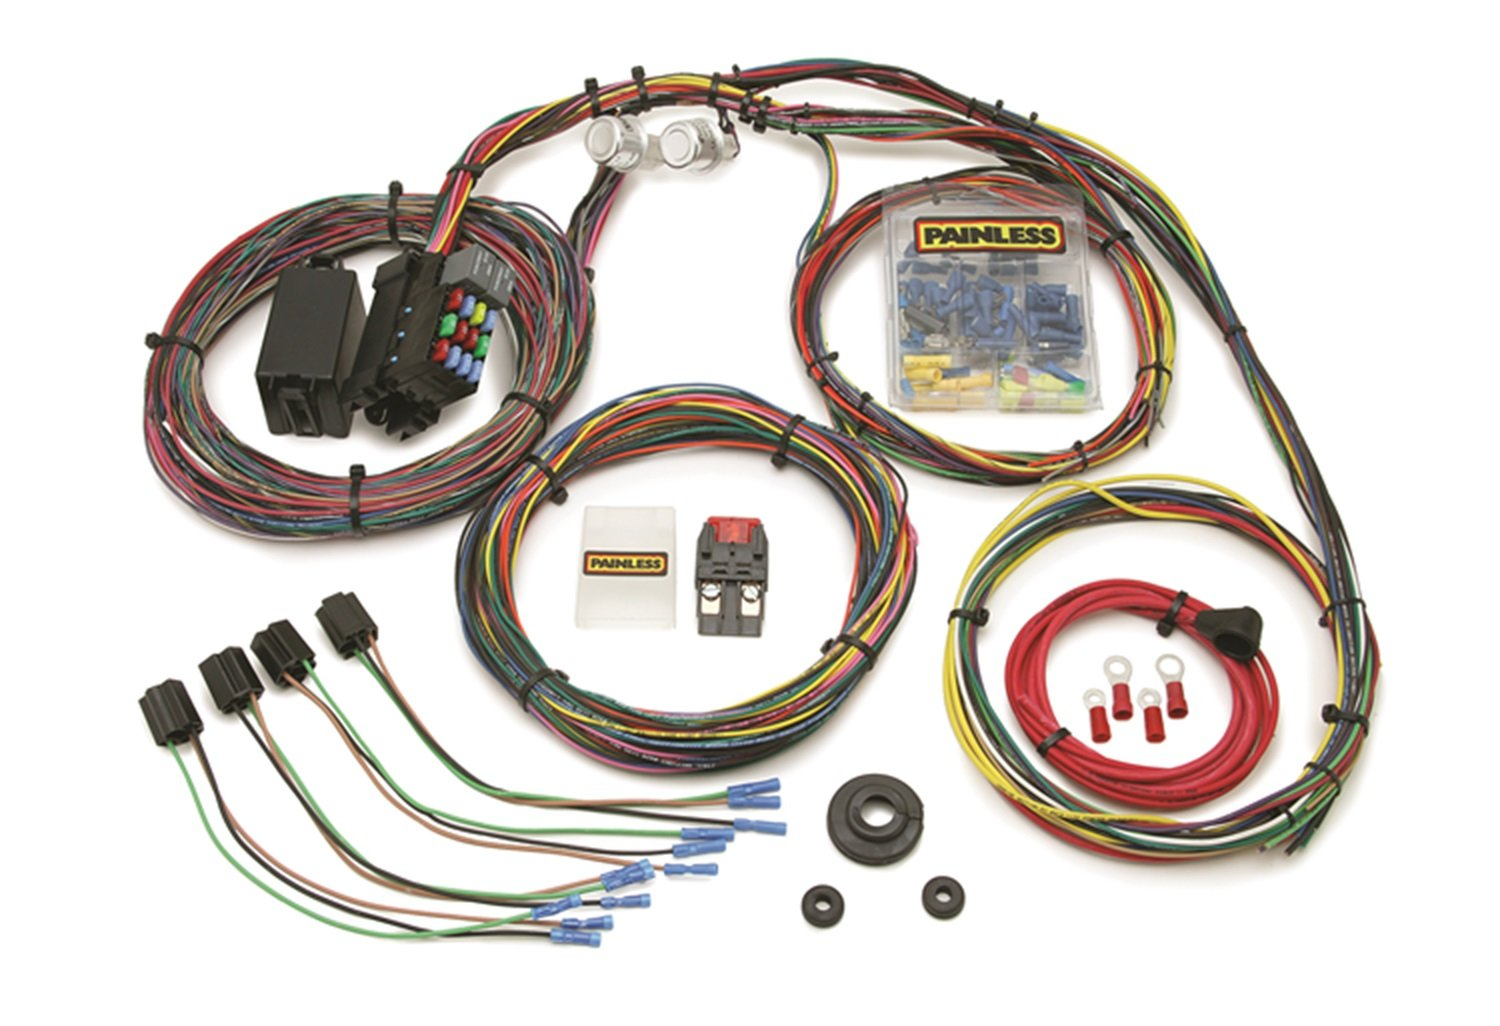 71gWOH5D5zL._SL1500_ amazon com painless 10127 automotive universal wiring harness at gsmportal.co